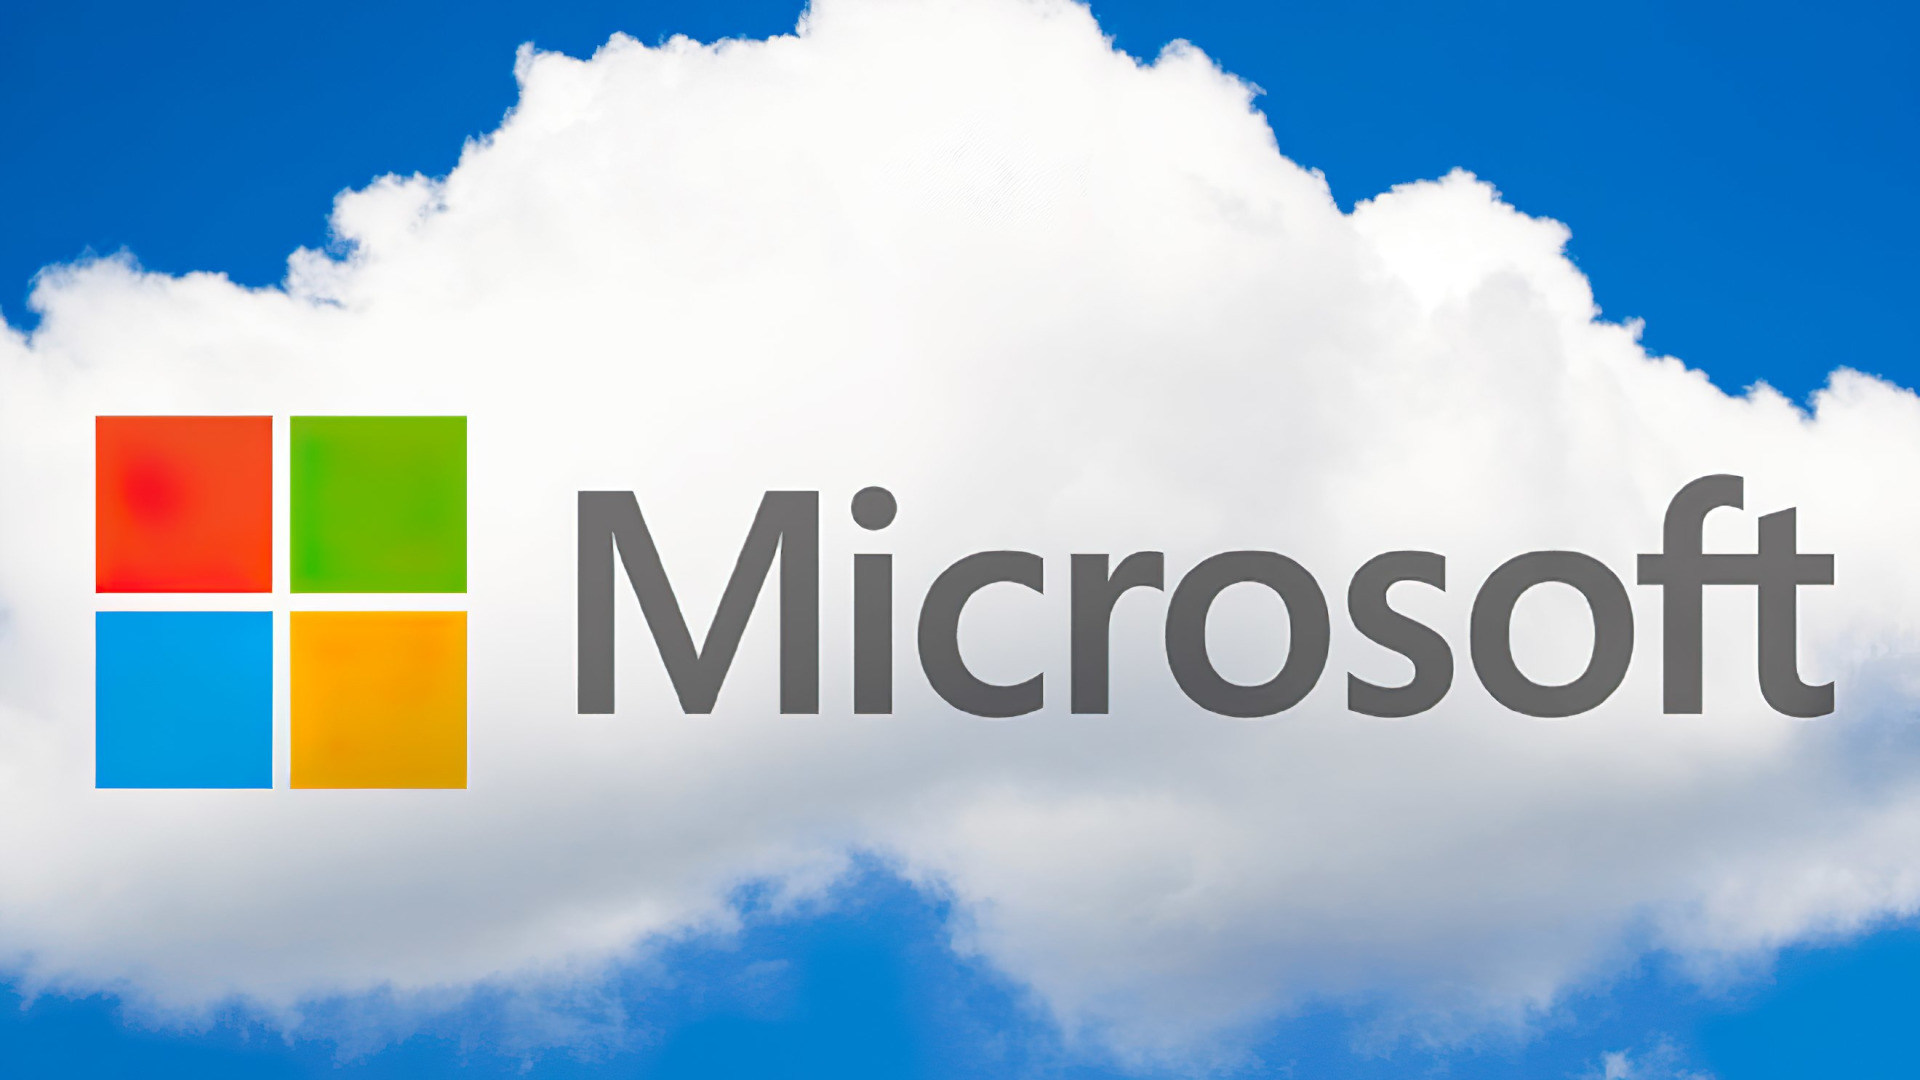 Microsoft, Cloud, Office 365, Azure, Dynamics 365